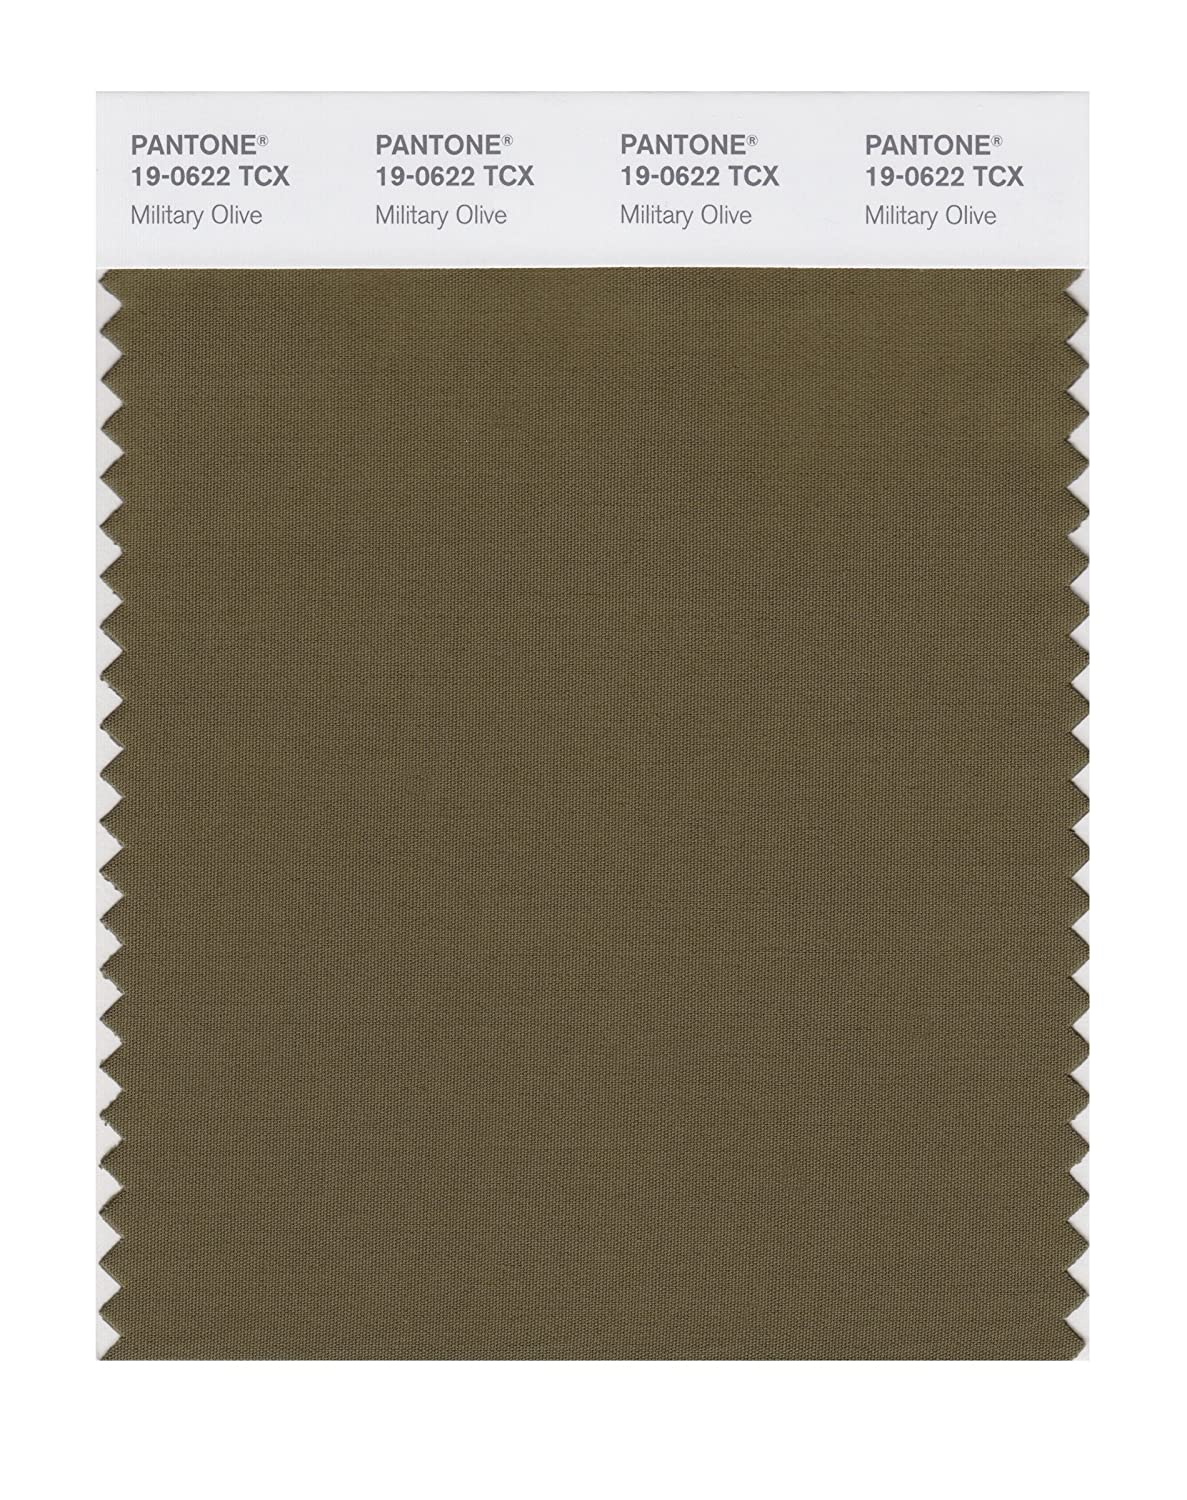 PANTONE SMART 19-0622X Color Swatch Card, Military Olive - Wall ...